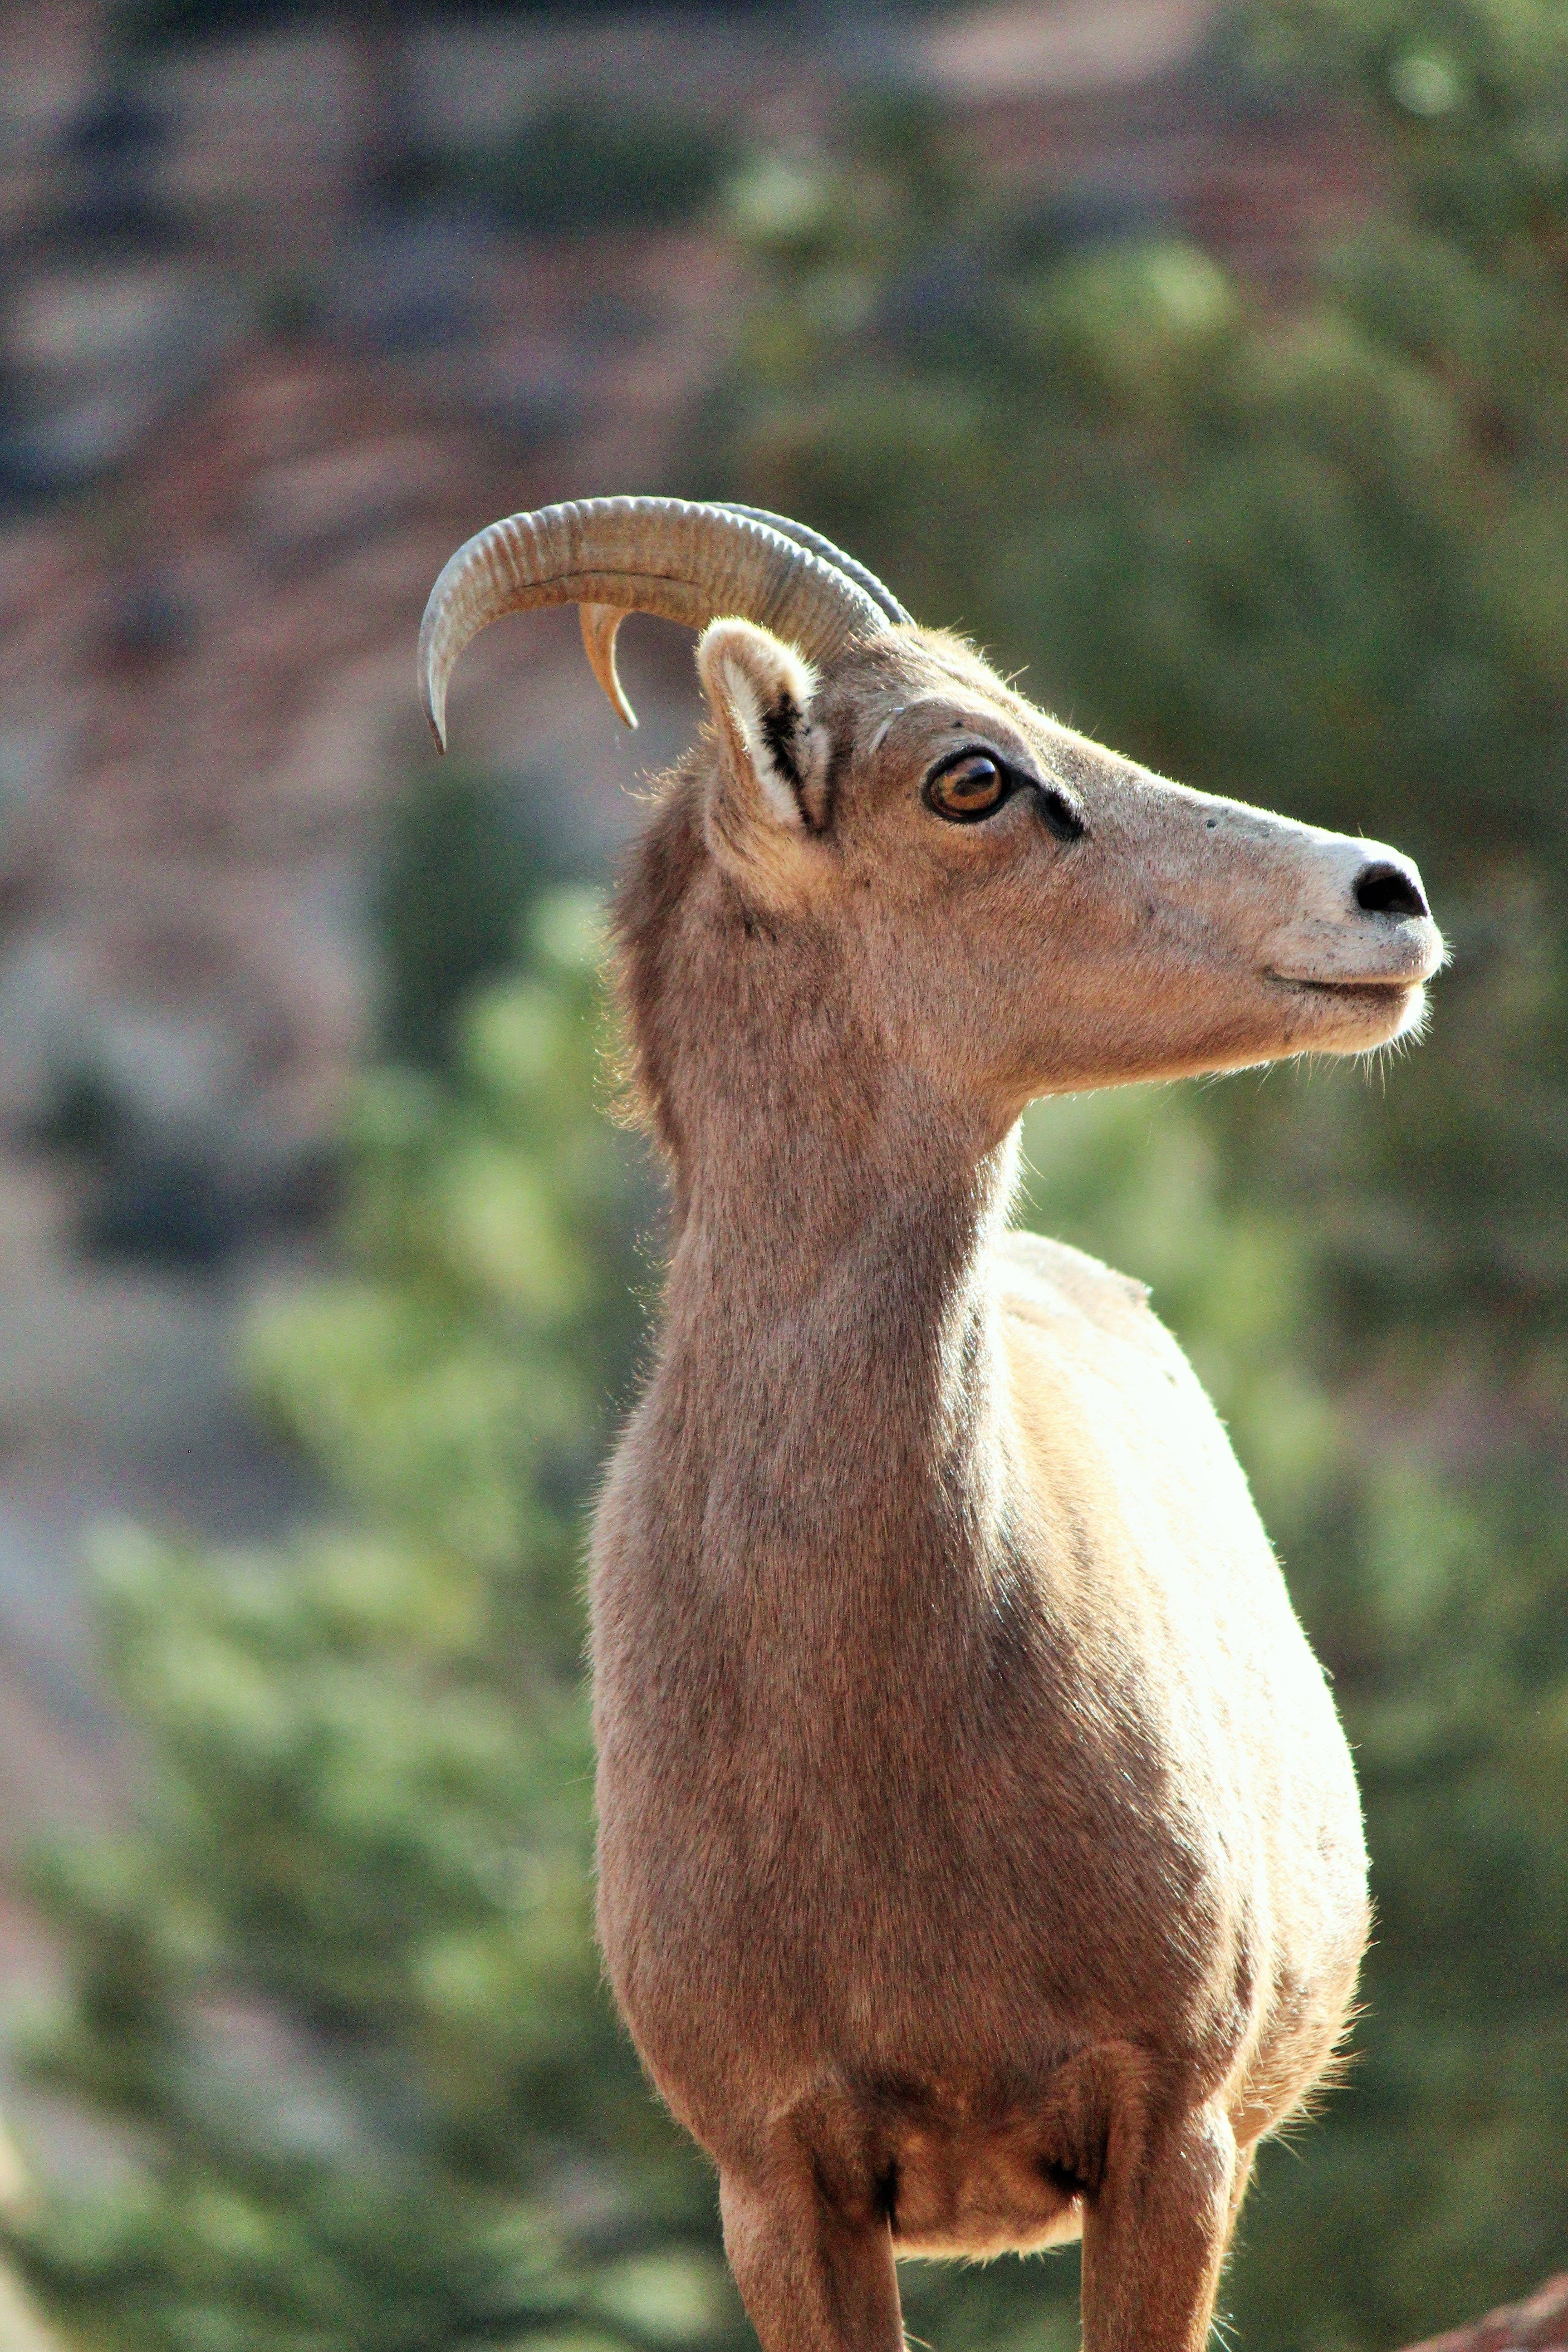 Sheep in Zion National Park